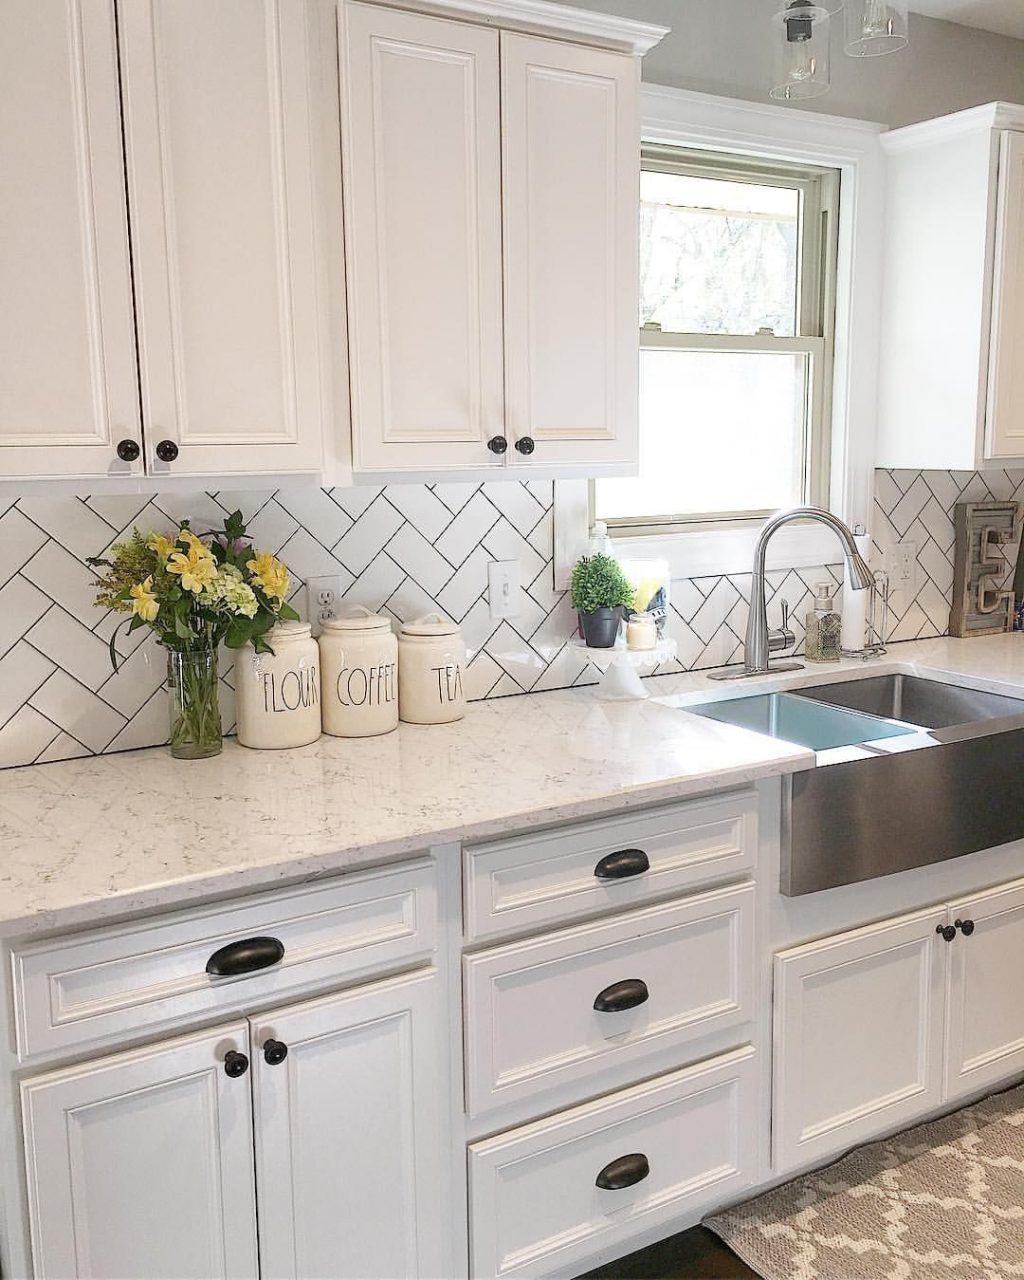 5 Tips On Buying Farmhouse Sink House Decor Farmhouse Kitchen